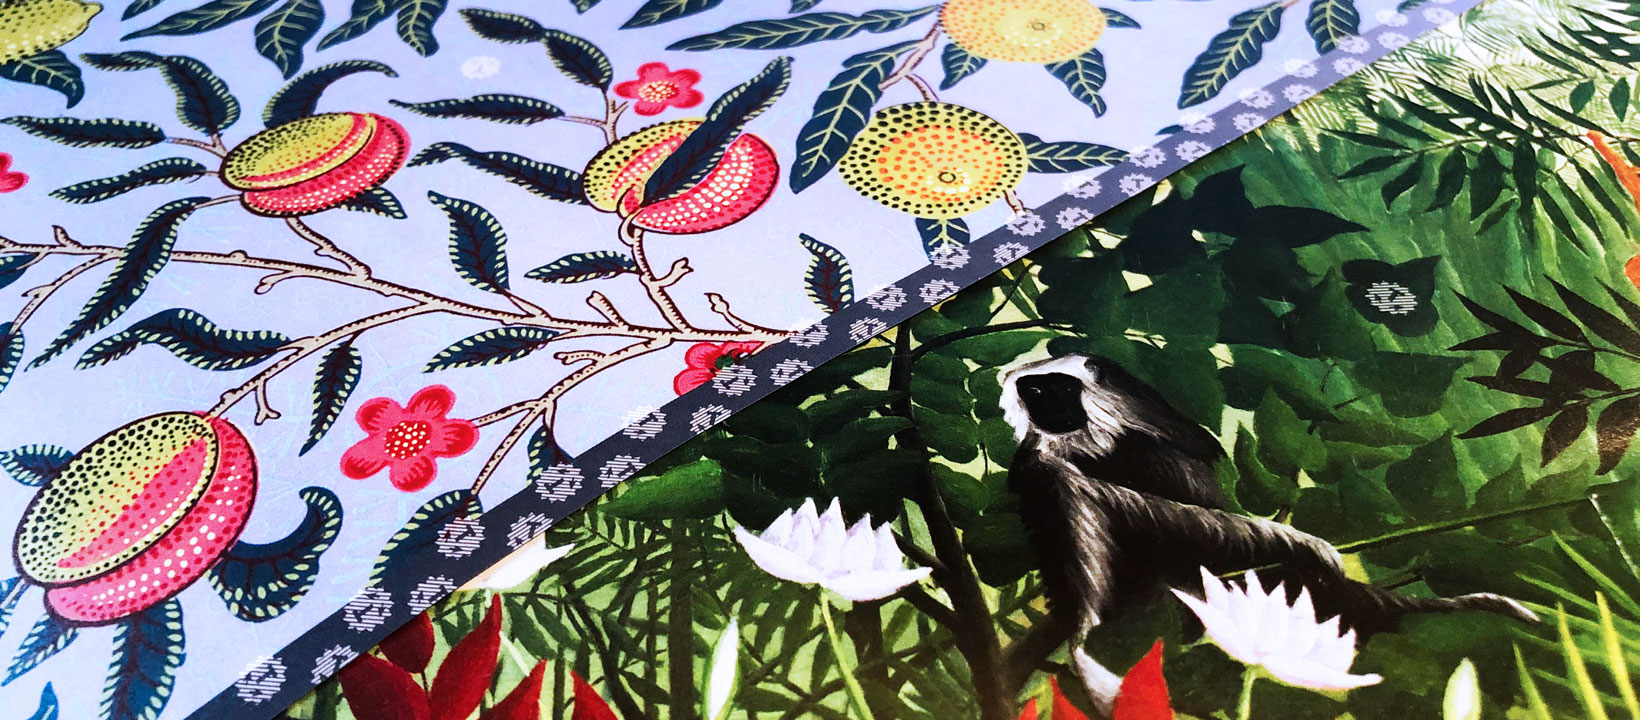 House of Thol giftwrap Henri Rousseau & William Morris